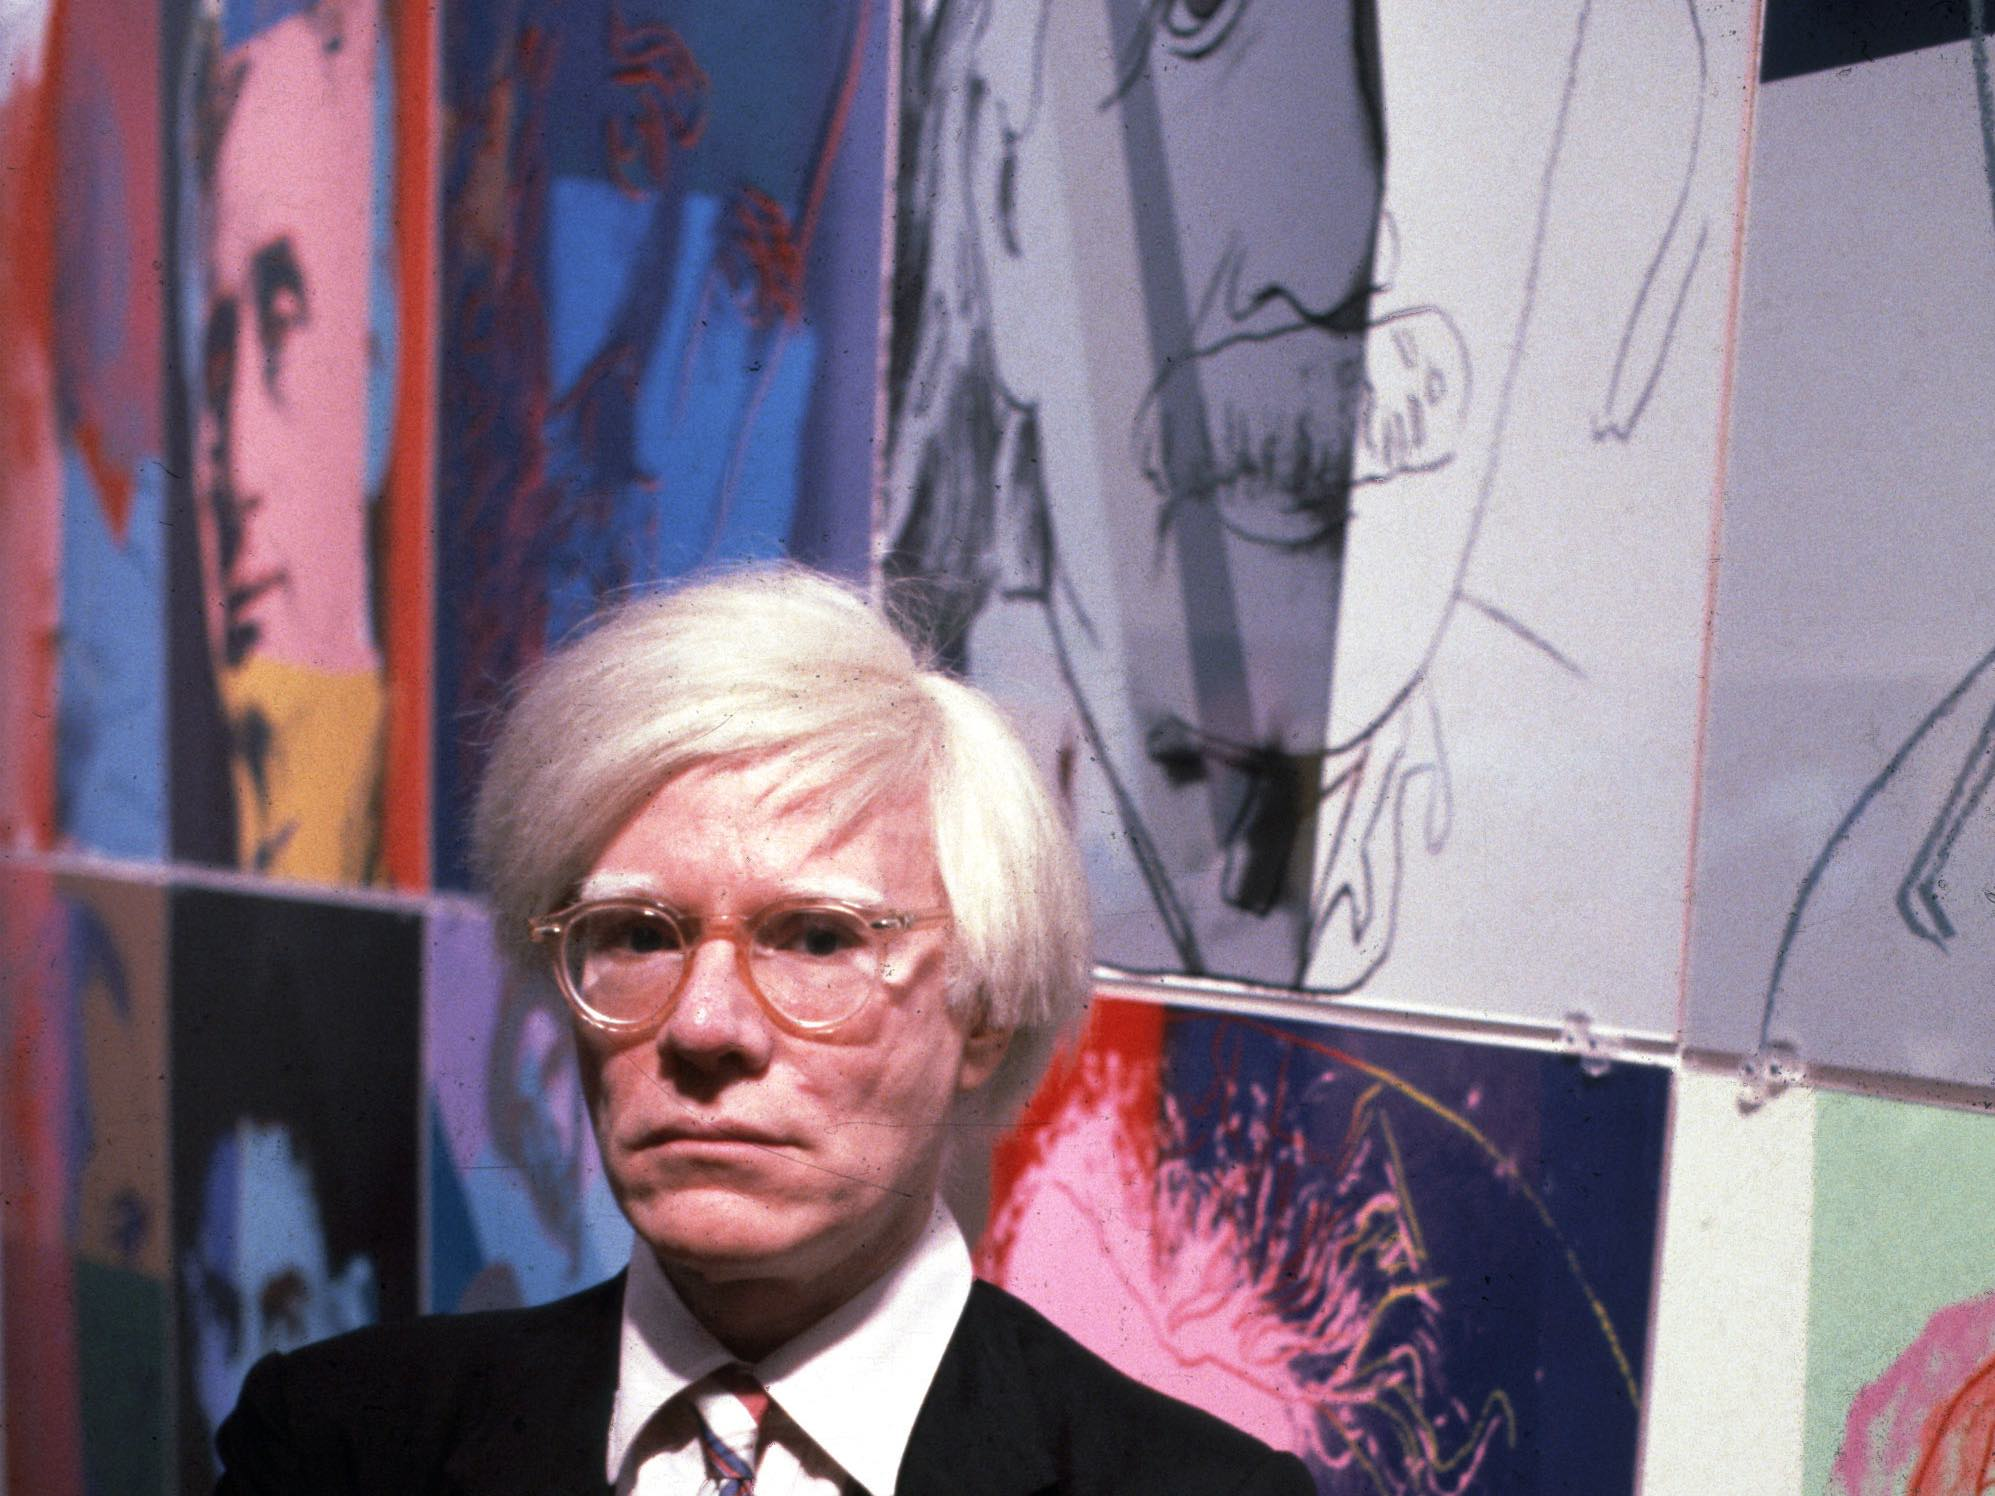 Thief Steals Andy Warhol Paintings Of Famous Jews Breitbart